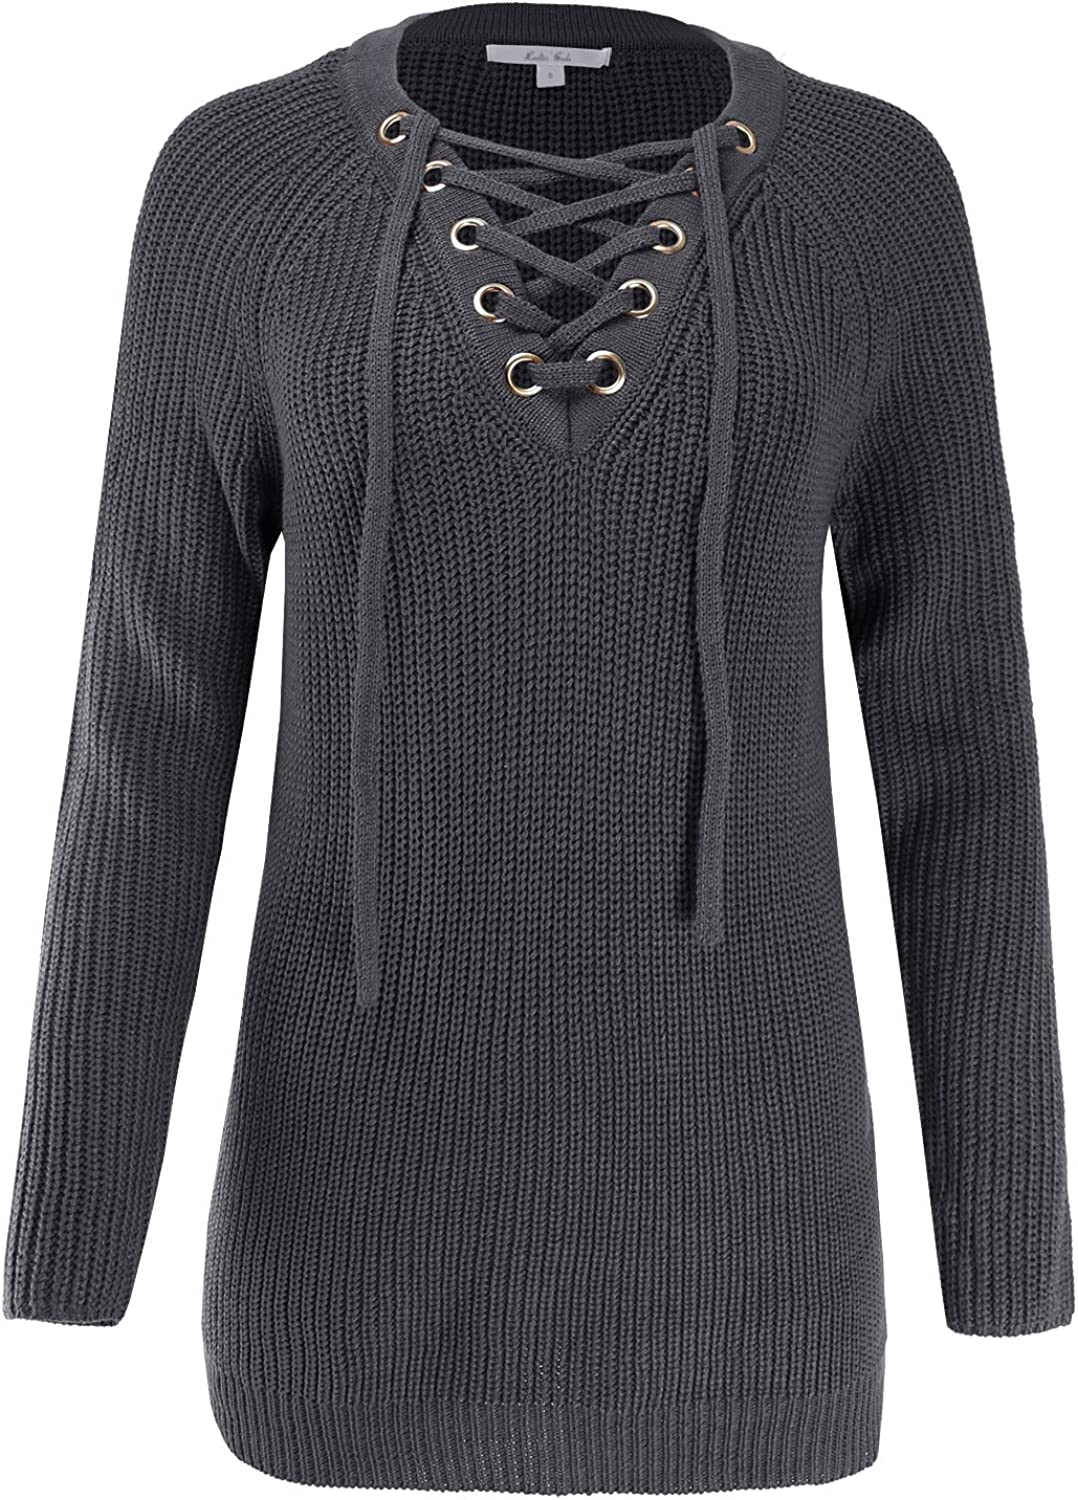 Ladies' Code Women's Raglan Long Sleeve Lace Up Knitted Sweater